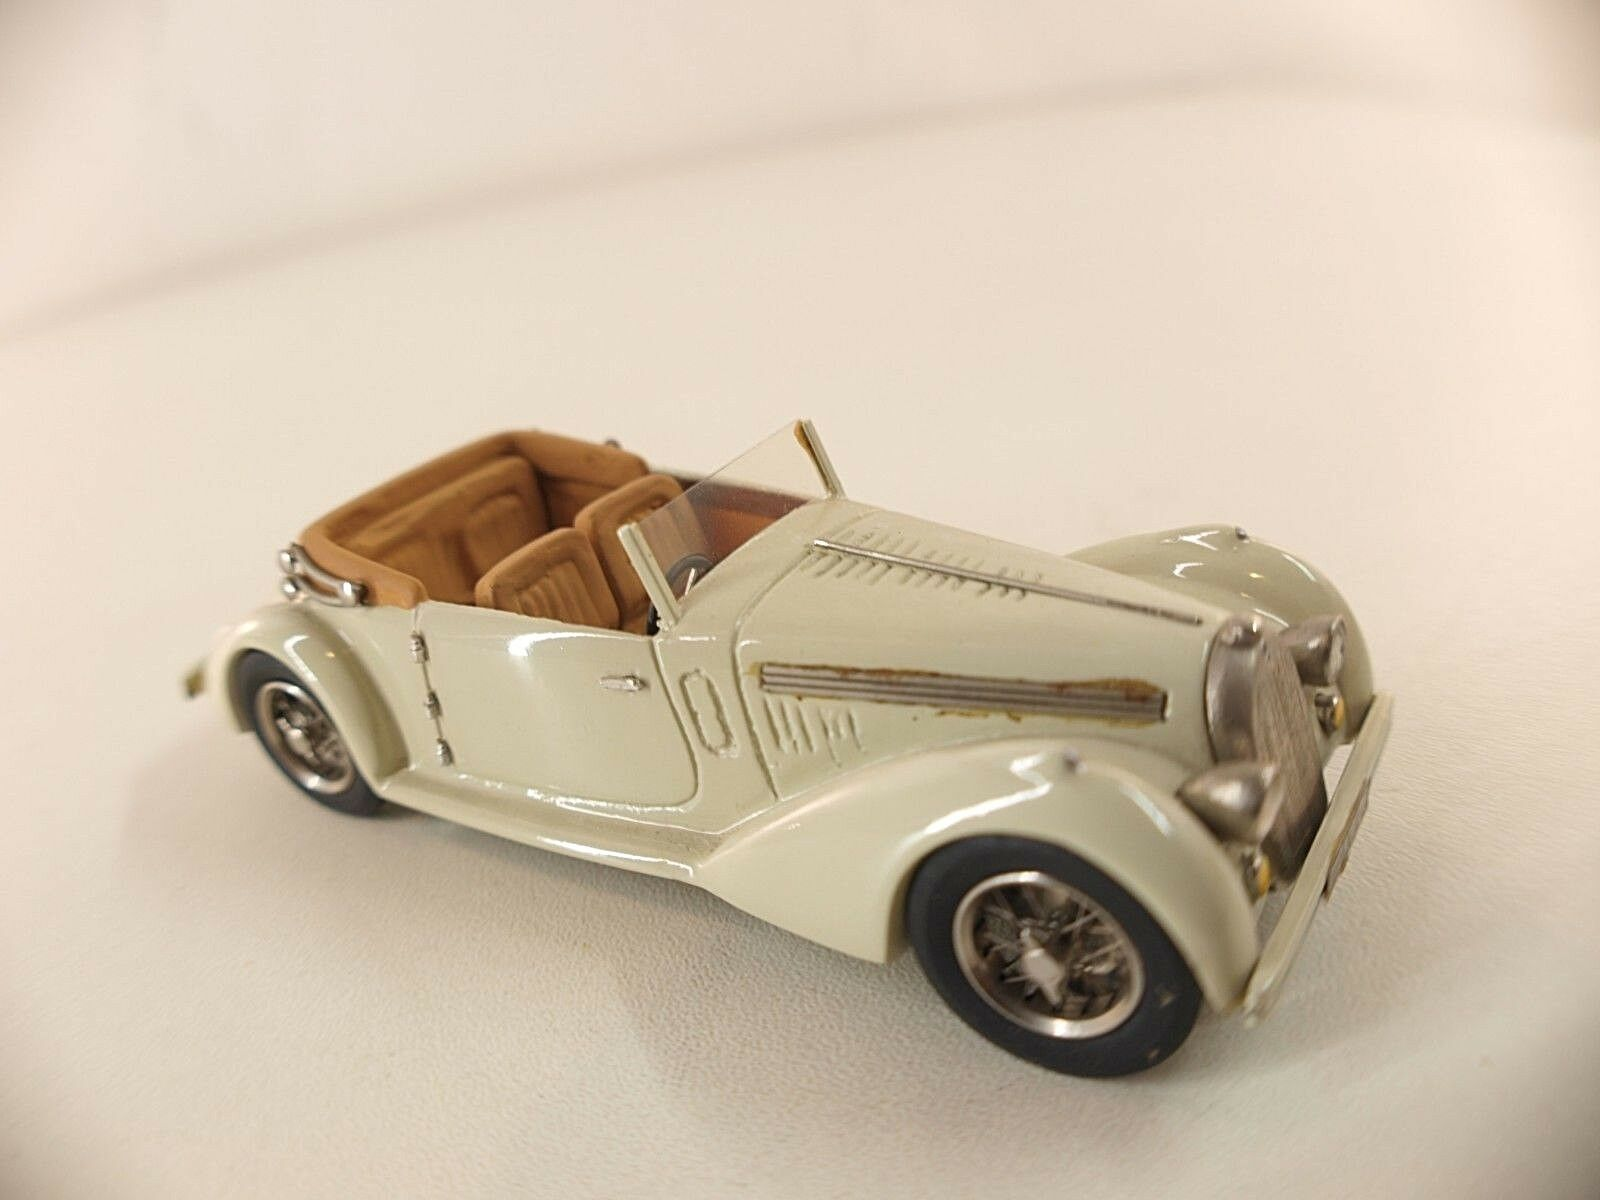 Ma Collection (Suisse)  n°6 TALBOT LAGO RECORD Cabriolet 1938  Lim Ed n°150 1 43  meilleure offre